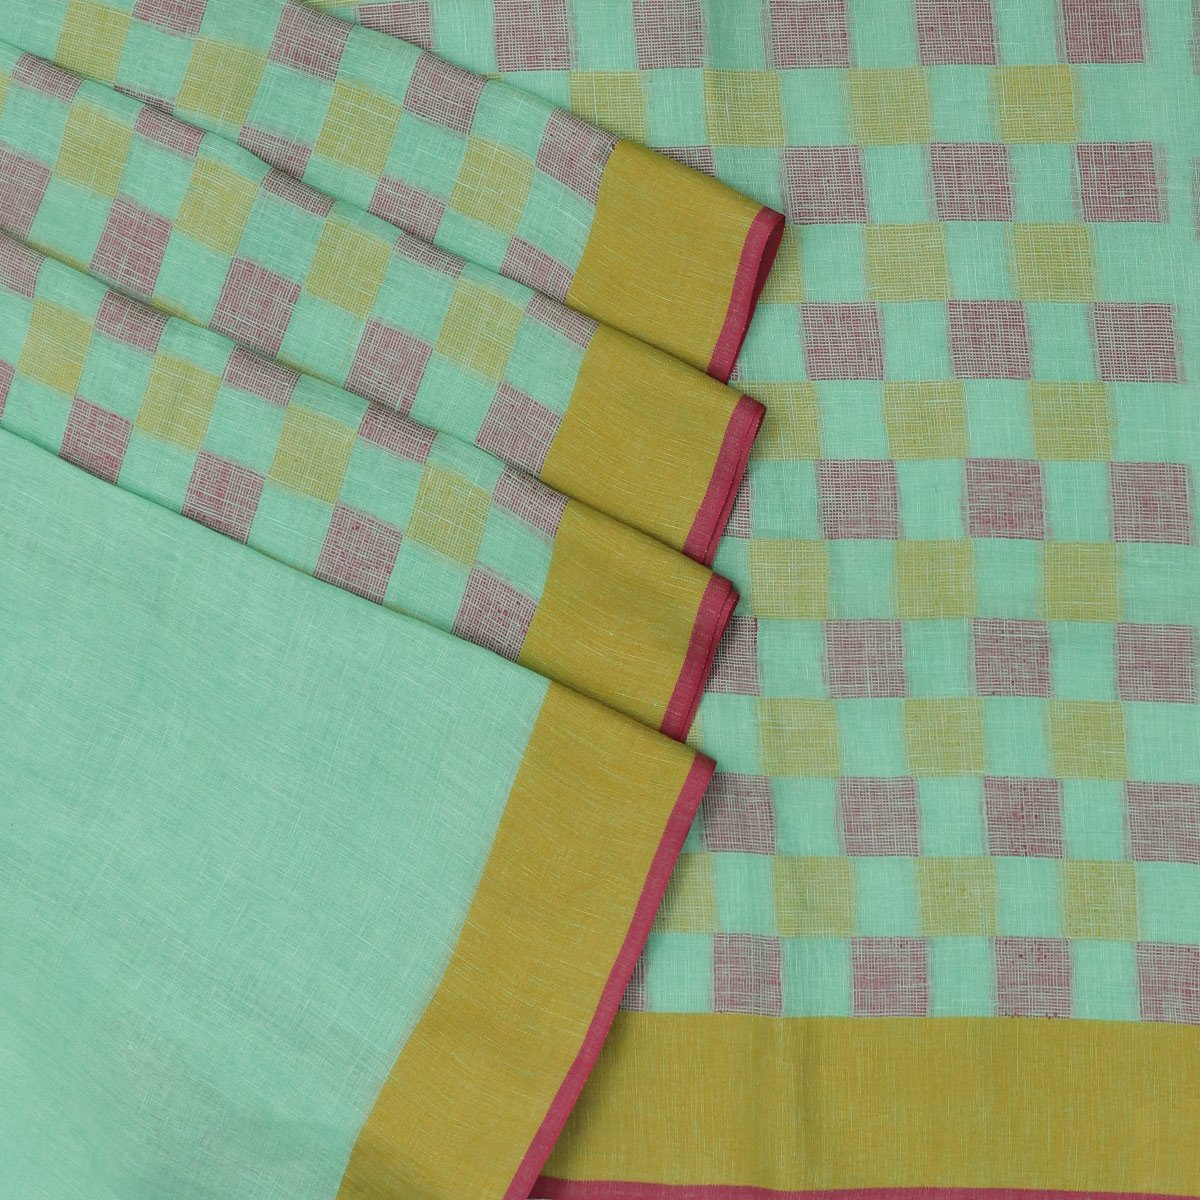 Linen Saree Mint Green and checked Mustered,pink with Simple border